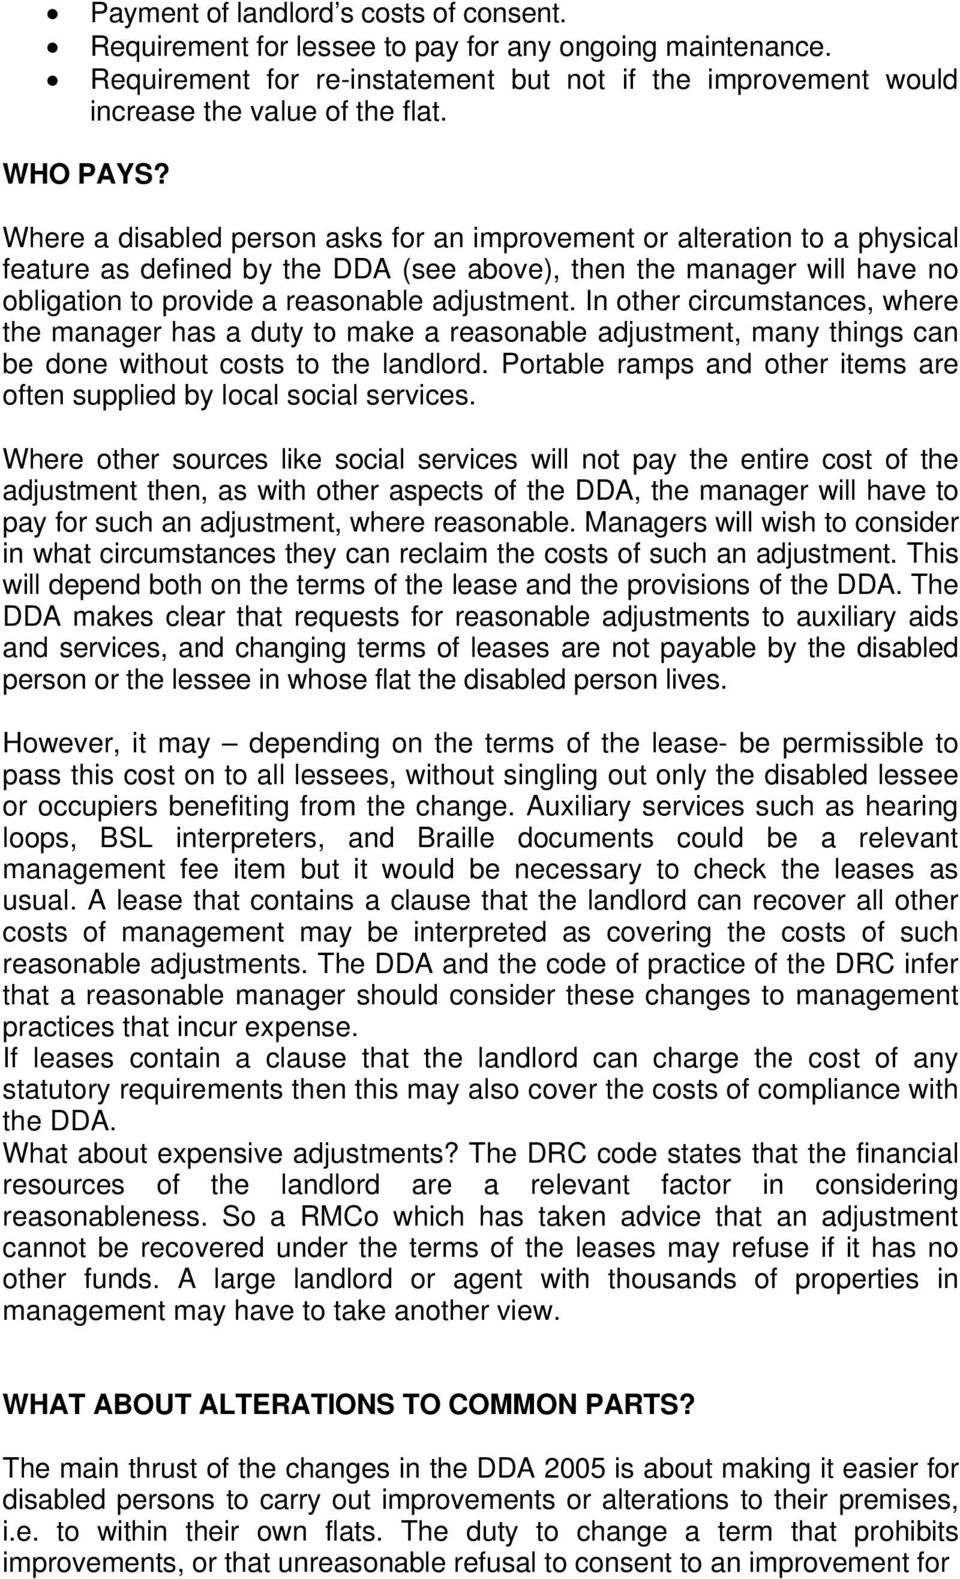 Where a disabled person asks for an improvement or alteration to a physical feature as defined by the DDA (see above), then the manager will have no obligation to provide a reasonable adjustment.